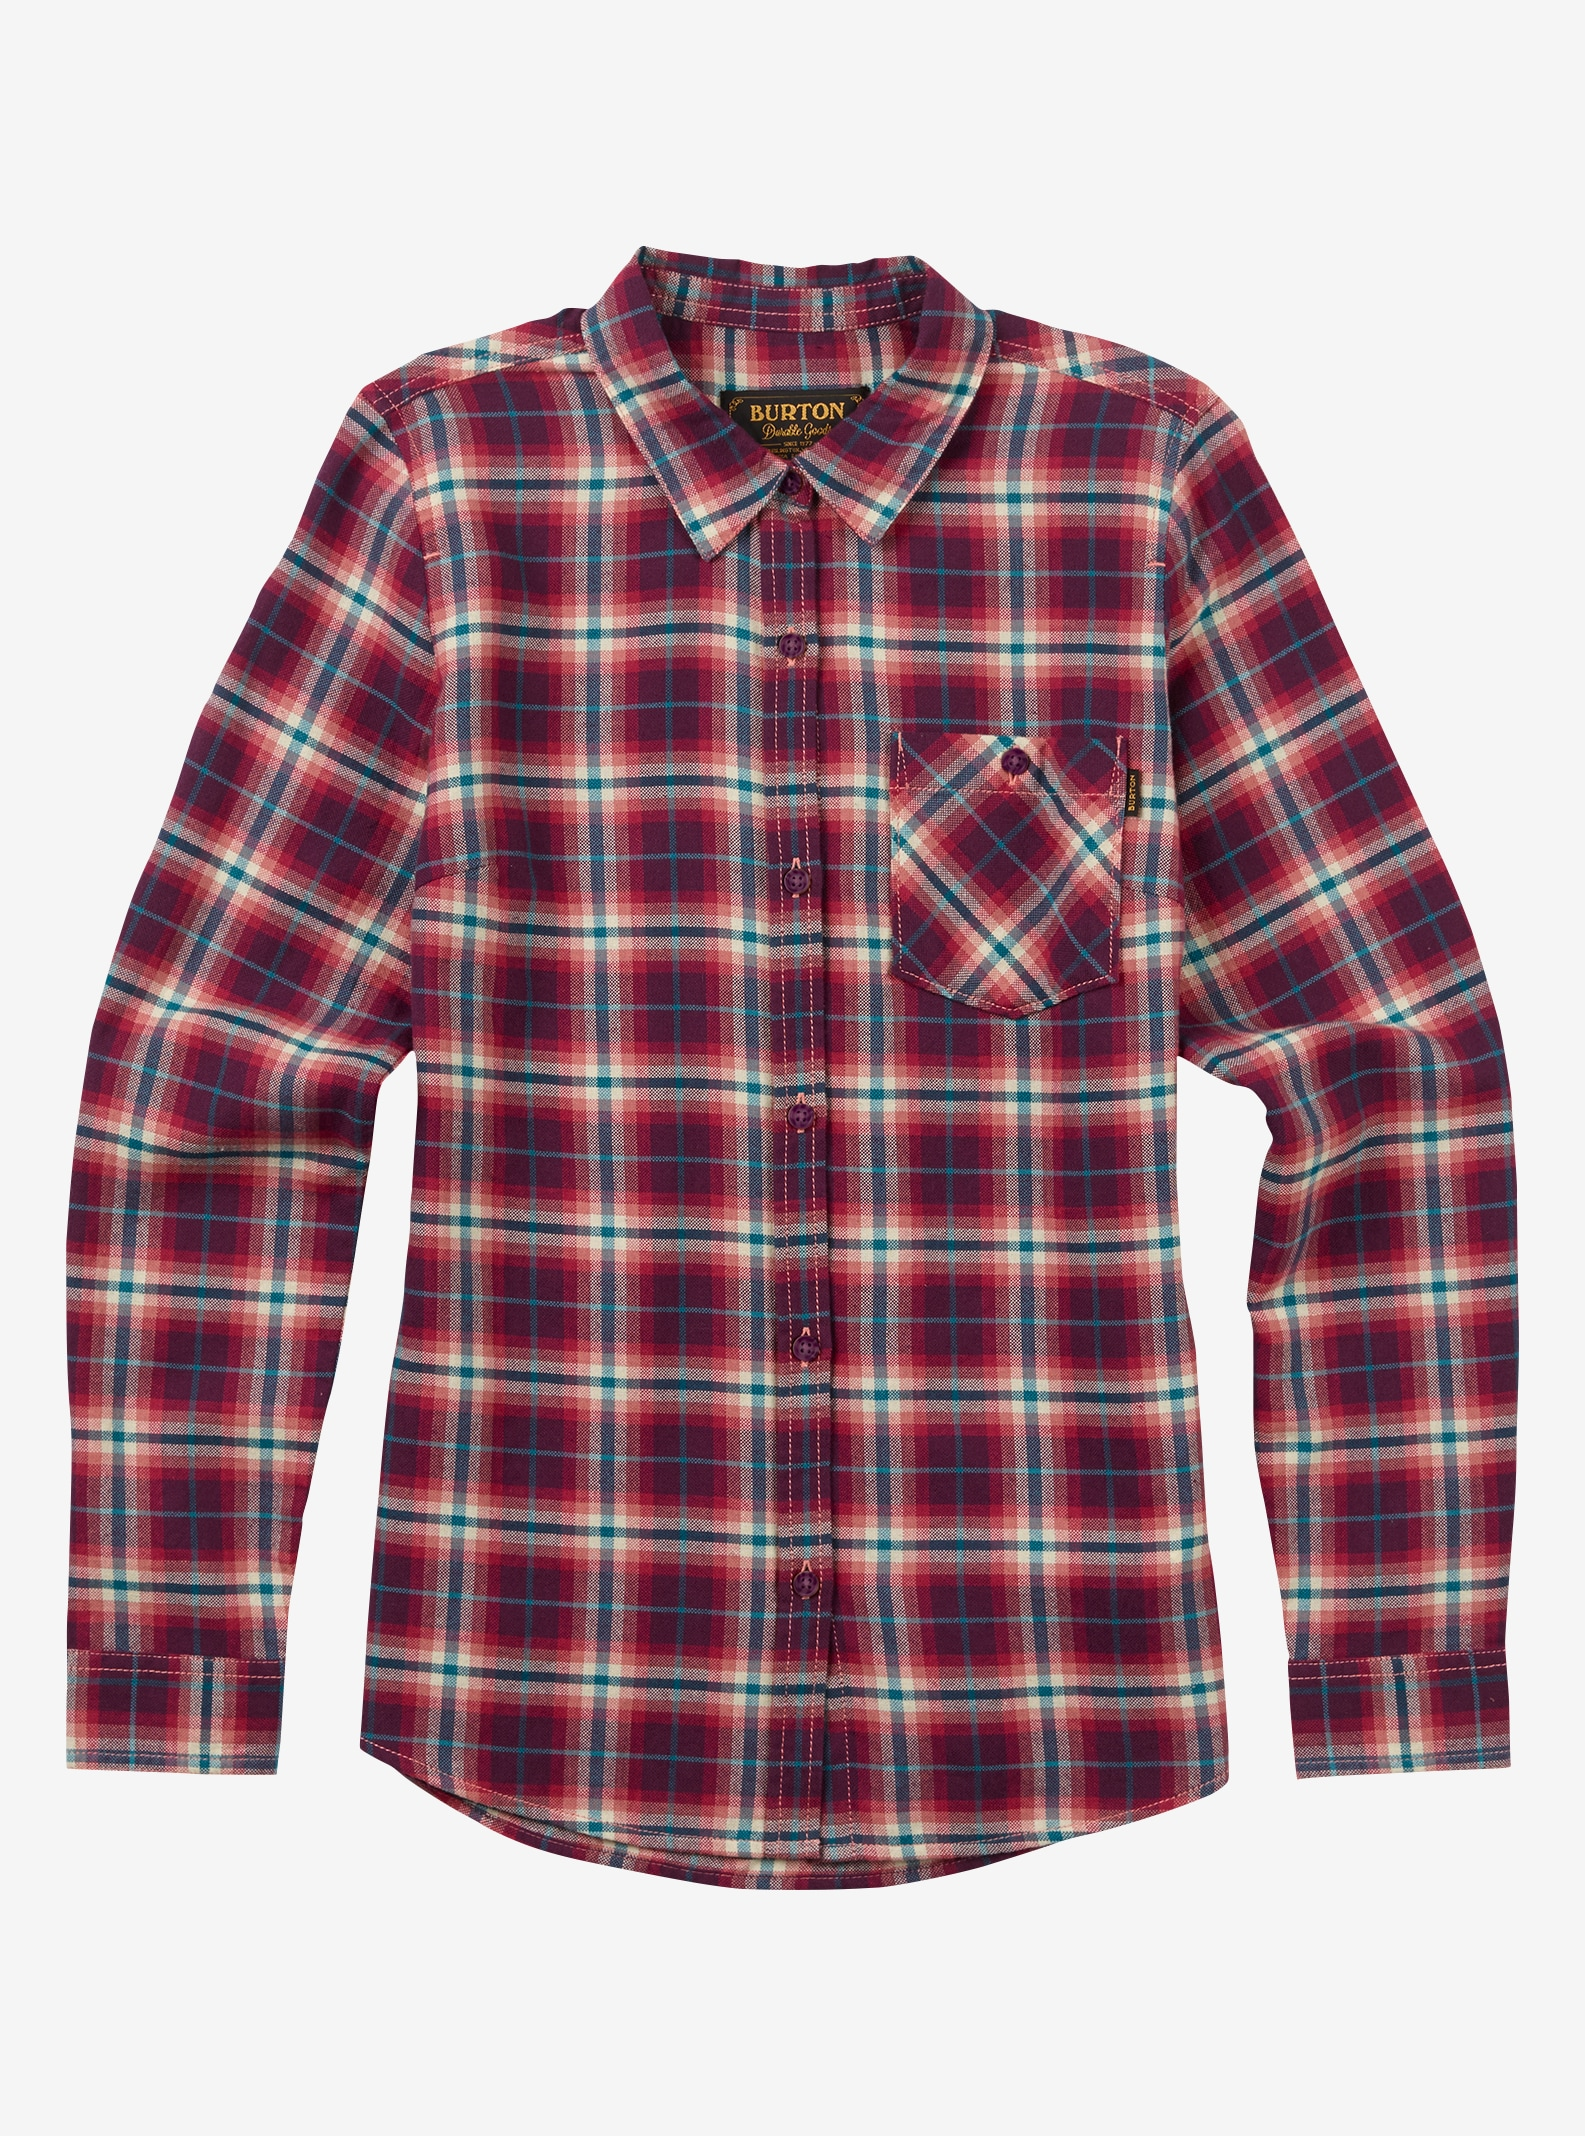 Women's Burton Grace Long Sleeve Woven shown in Anemone Haze Plaid